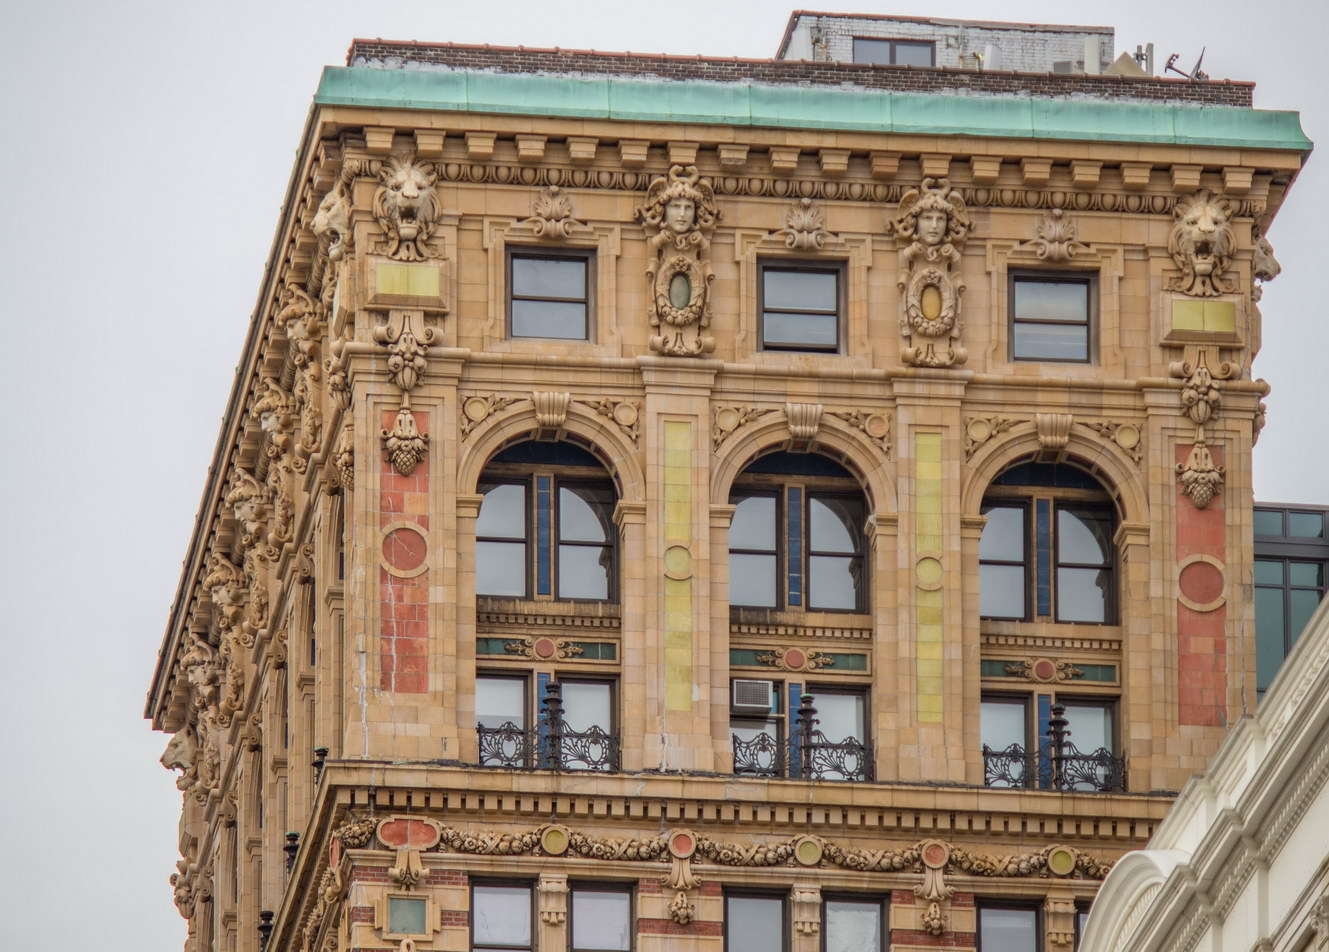 The building's crown is of colorful terra cotta.